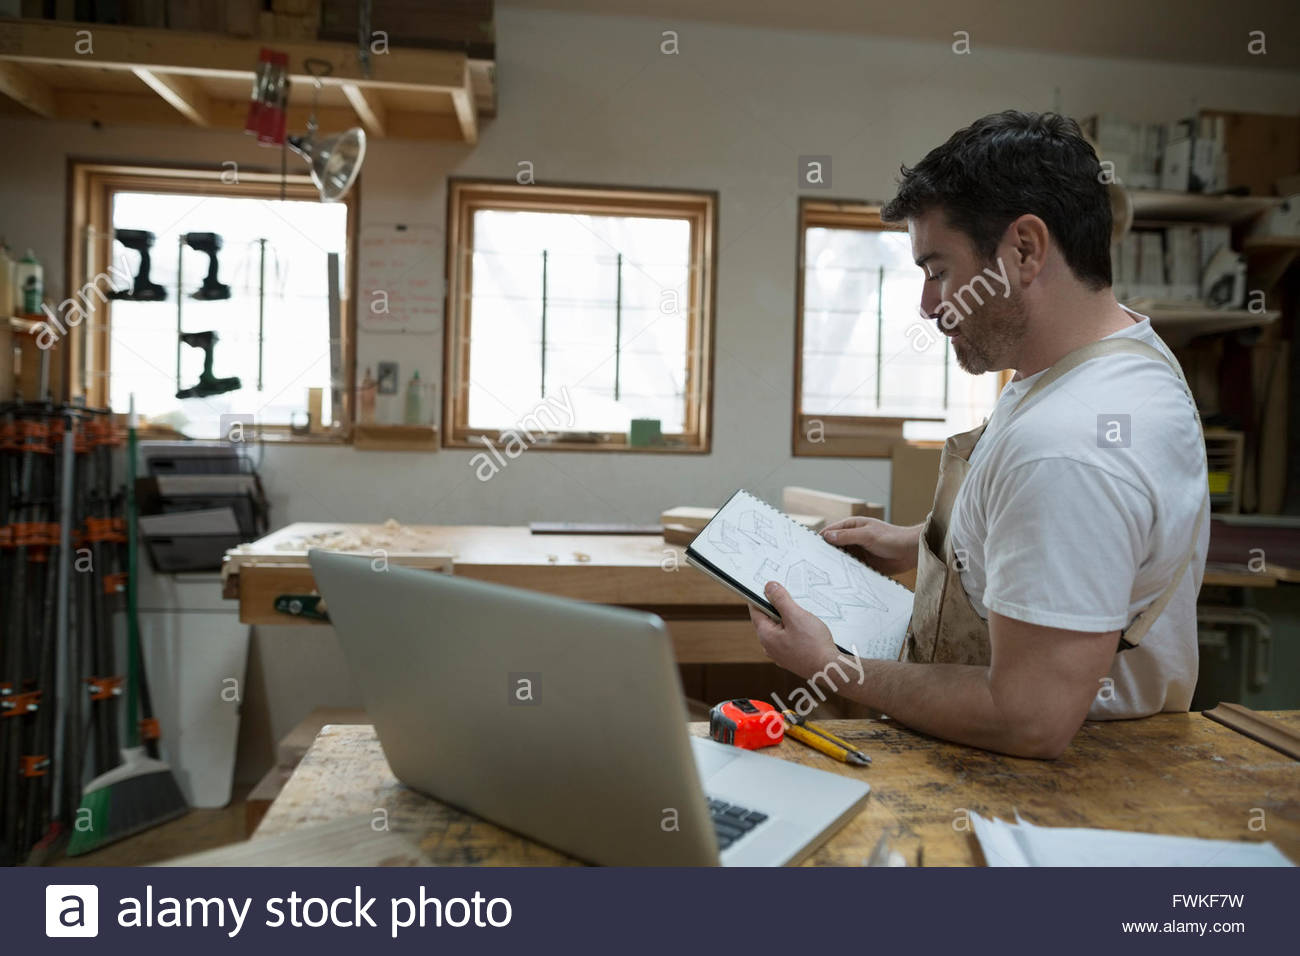 Carpenter brainstorming and sketching in workshop - Stock Image